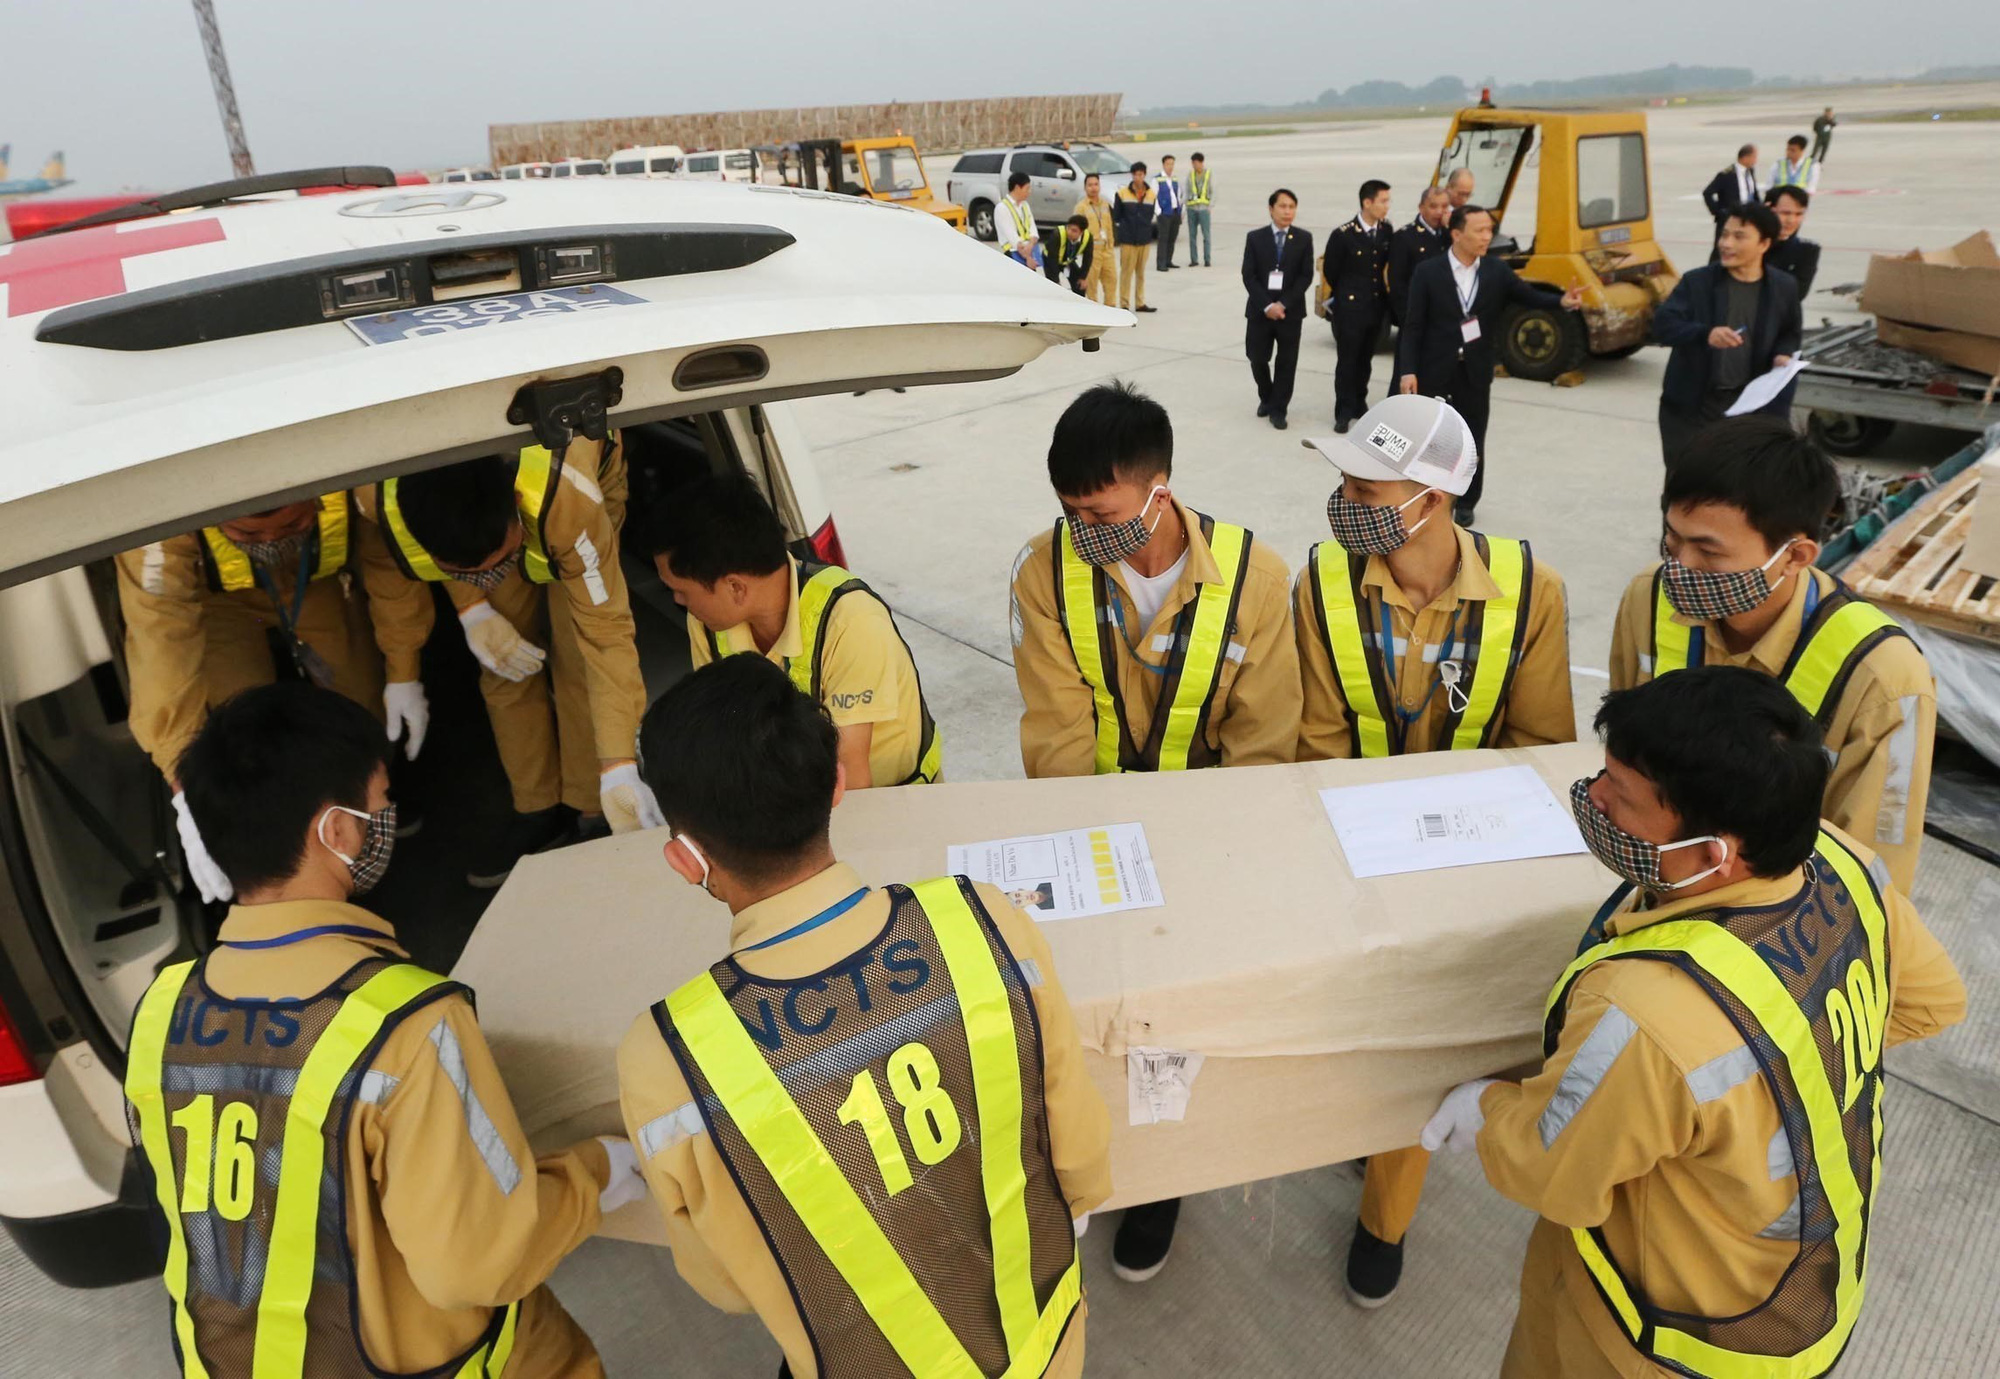 Airport employees carry coffins containing the bodies of 16 Essex truck victims to ambulances. Photo: Vietnam News Agency